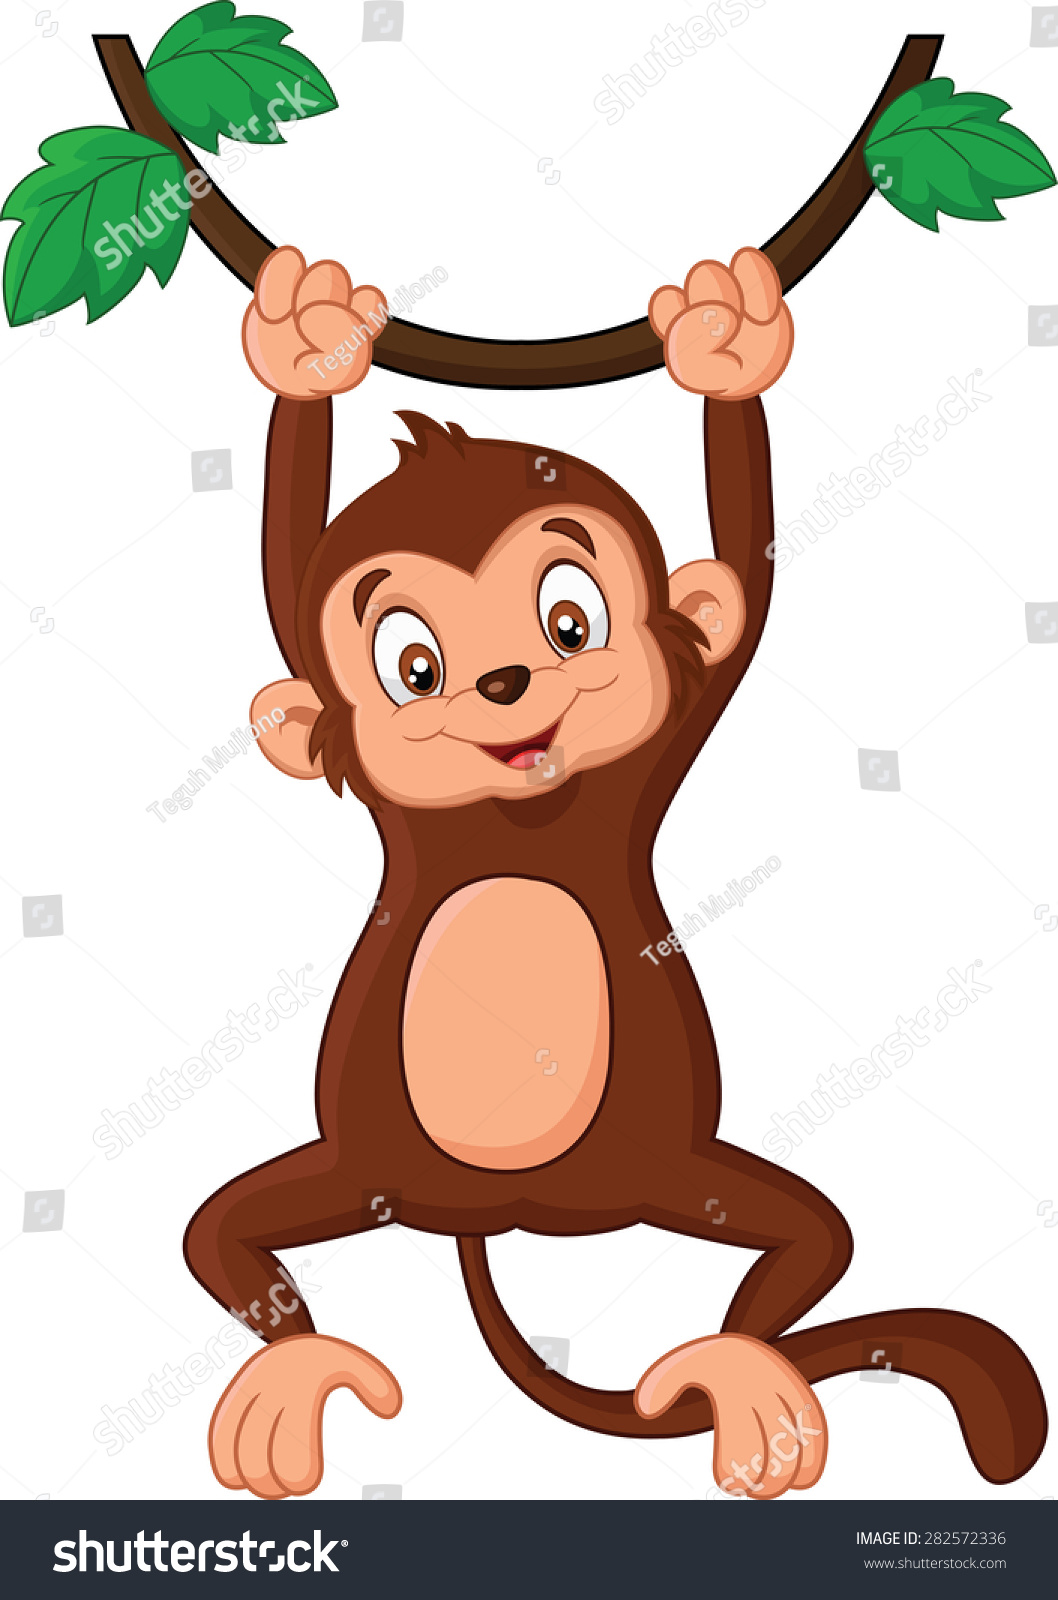 animated monkeys hanging from trees